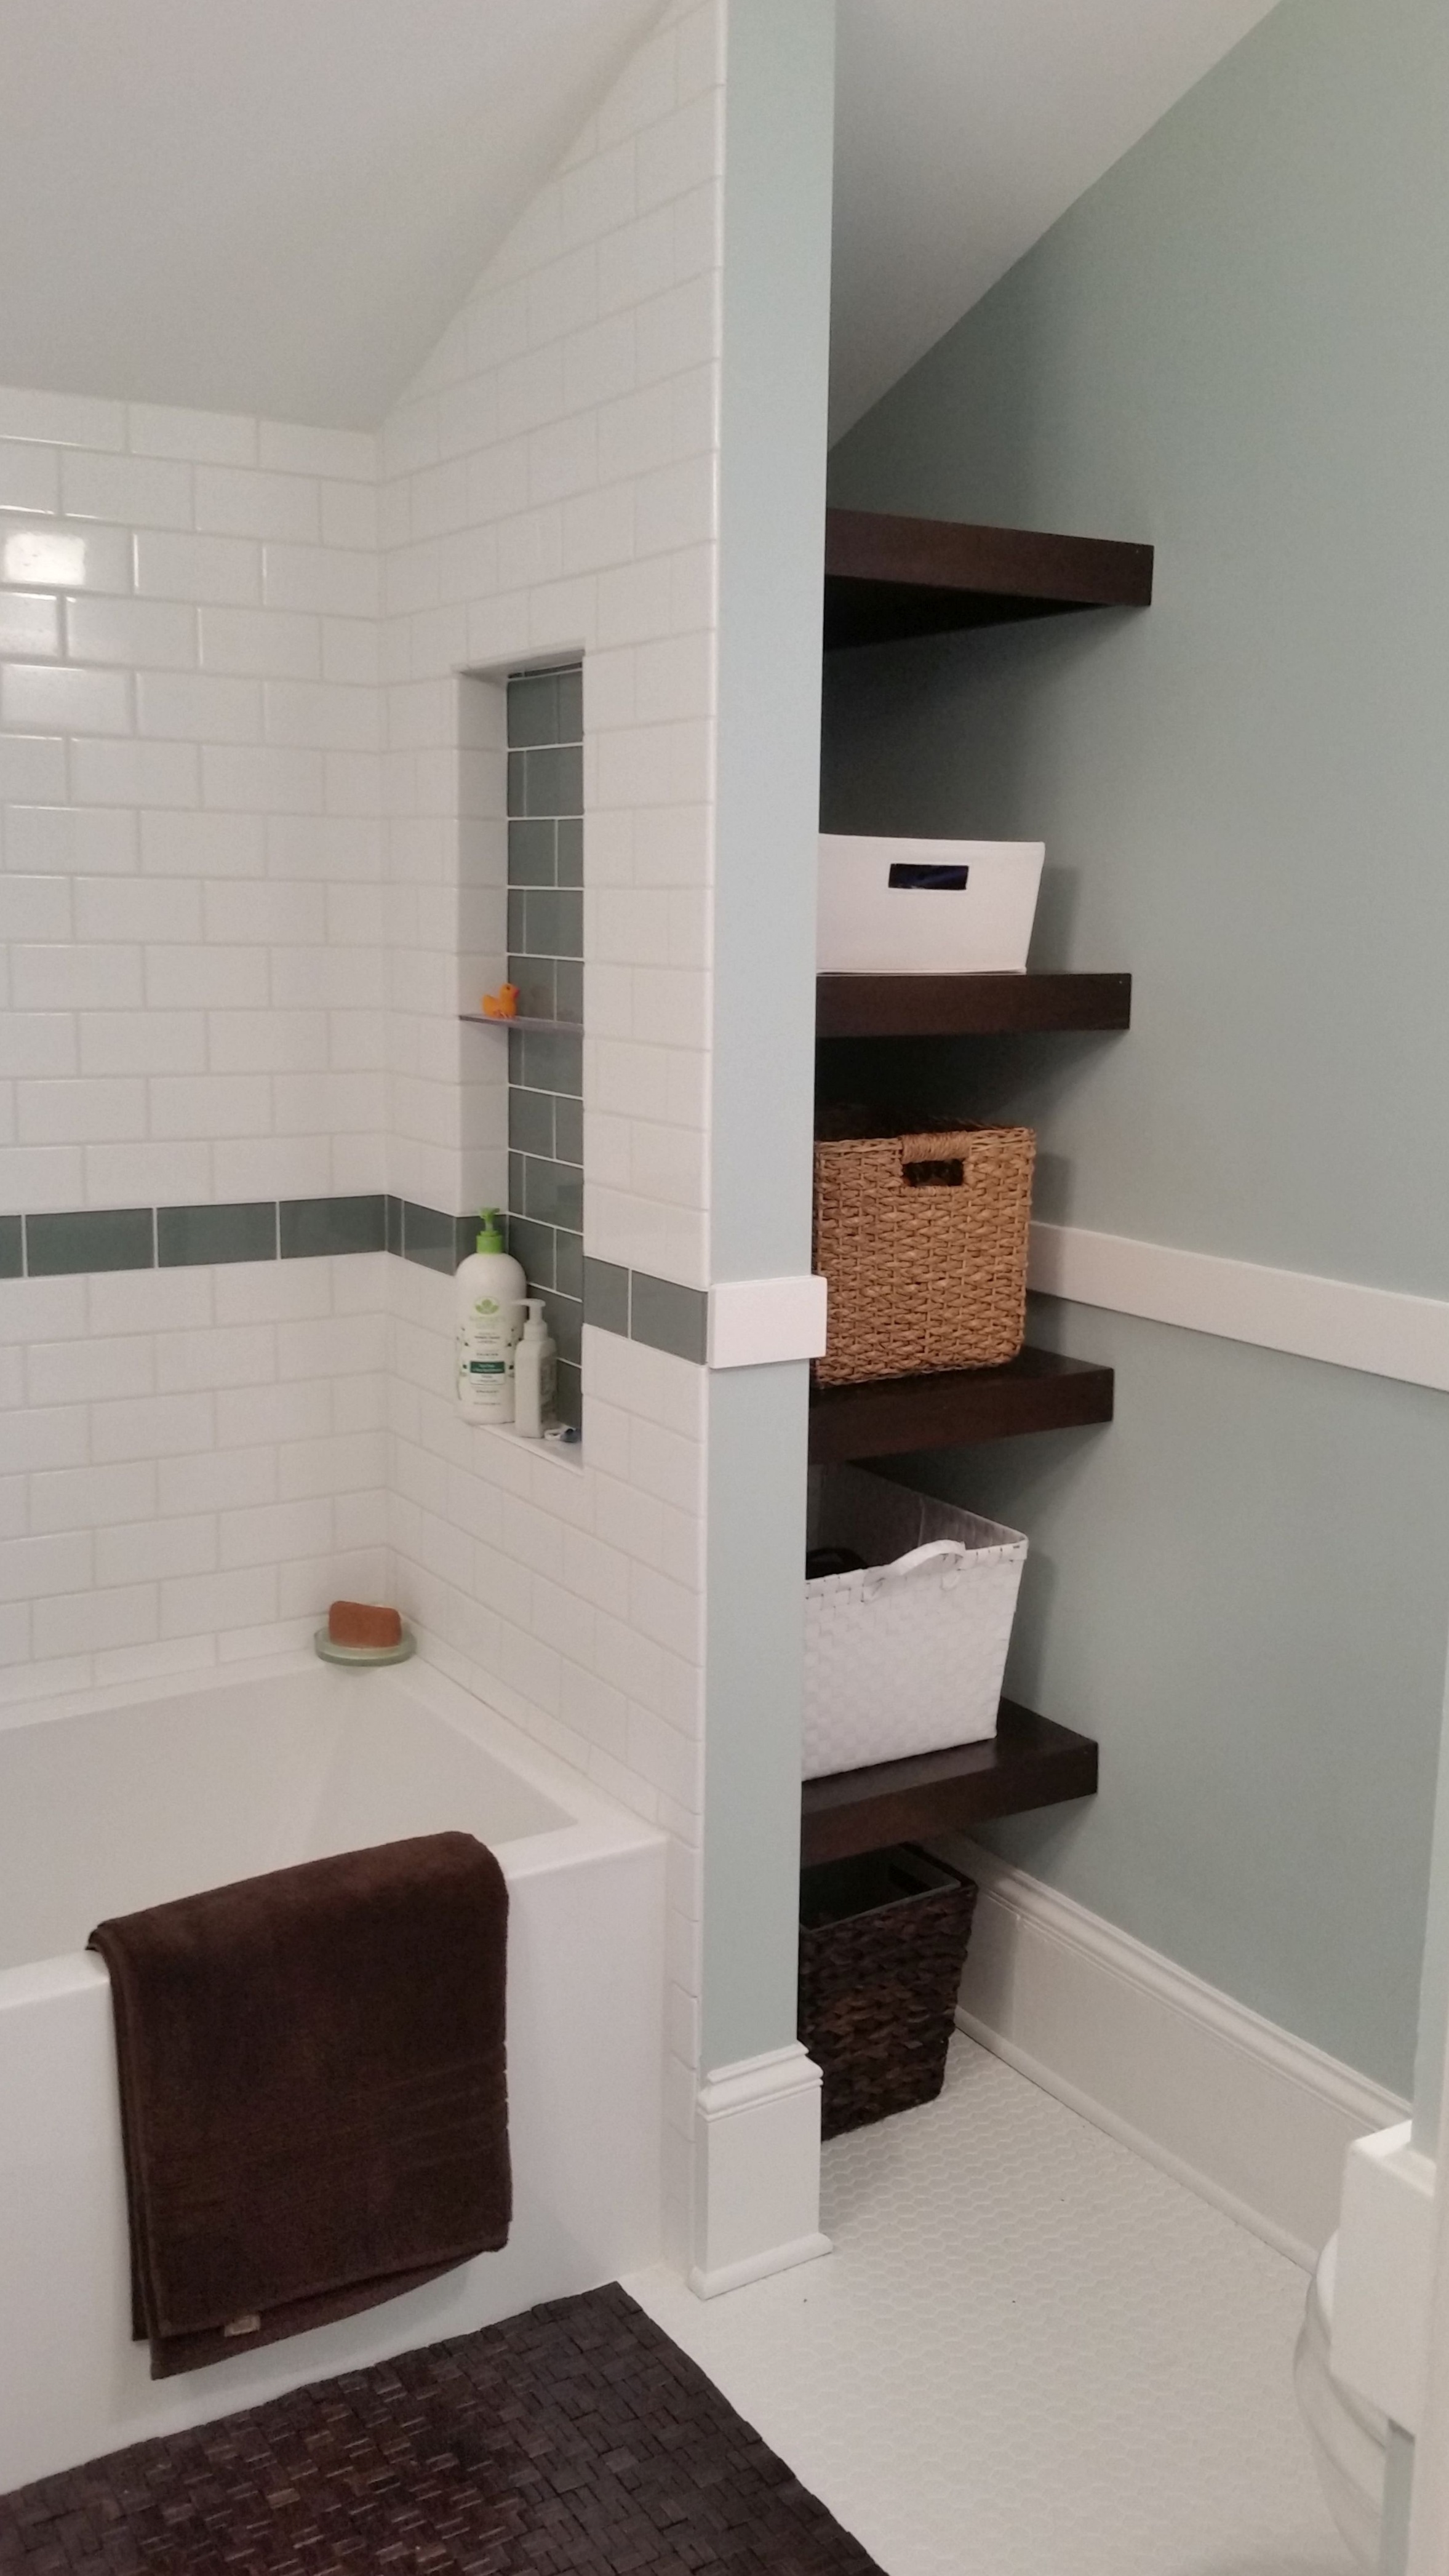 Bathroom remodel with dormer, new tub and shower tile, built in storage shelves, and fresh paint.